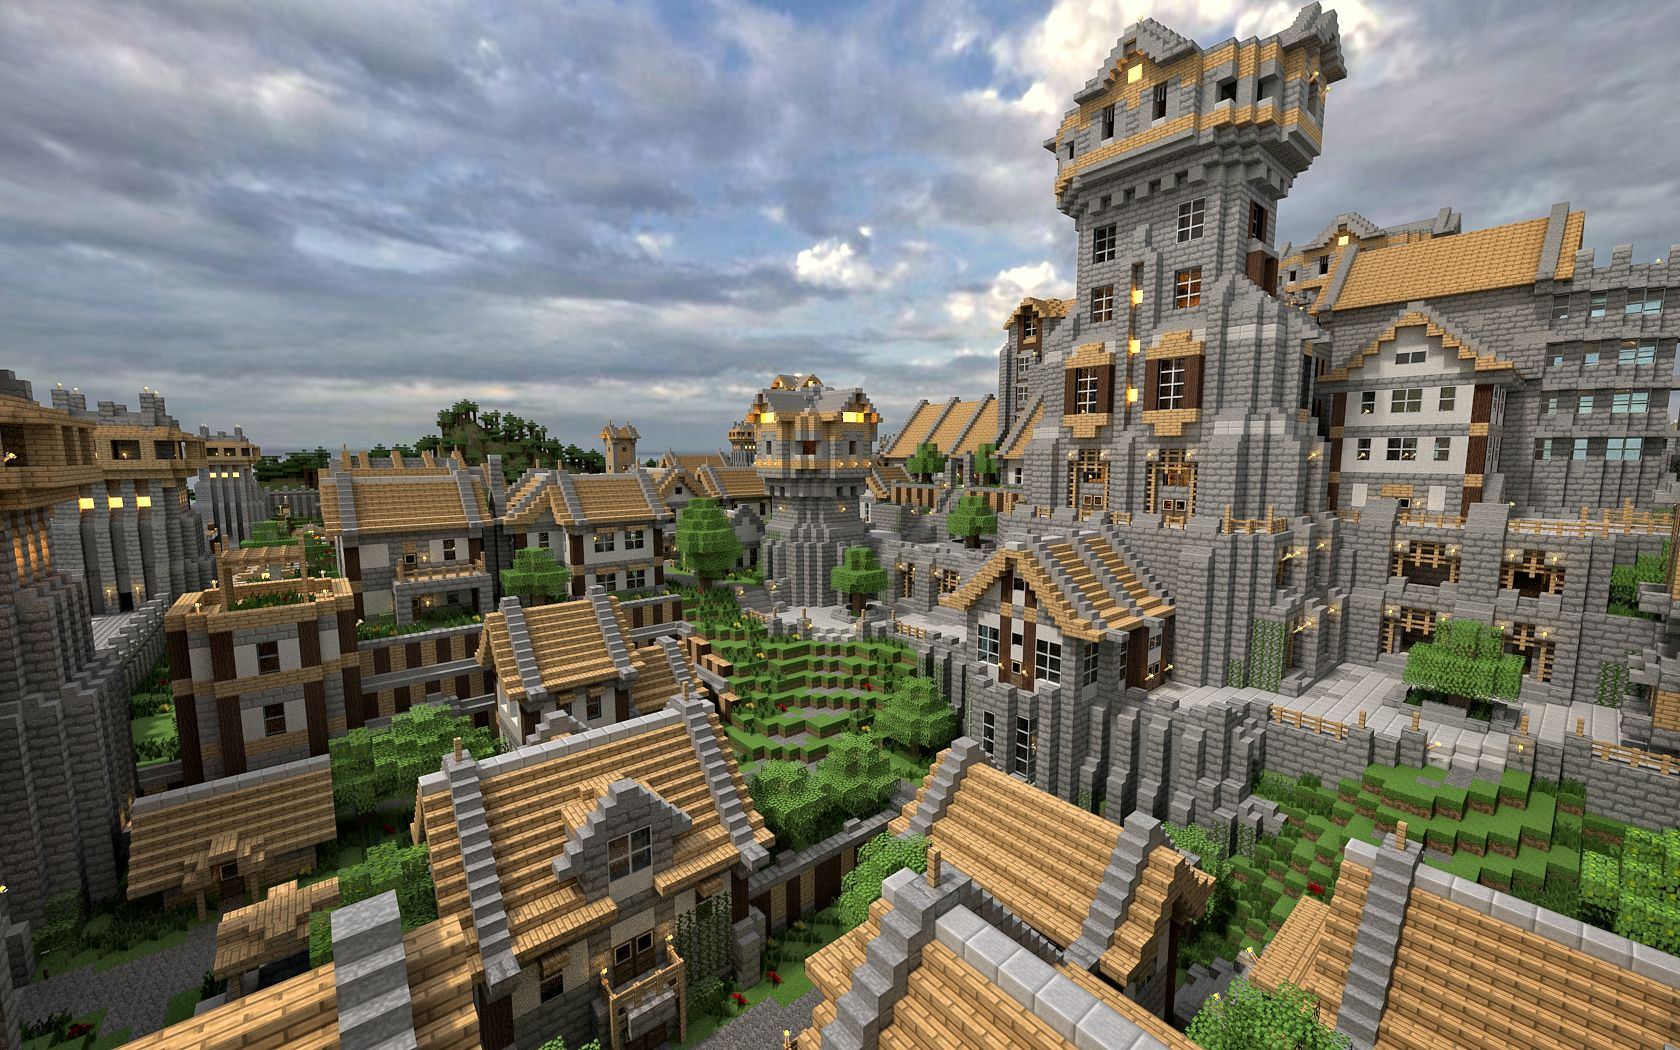 Minecraft Village Garden minecraft hd wallpapers - page 2 | minecraft fun | pinterest